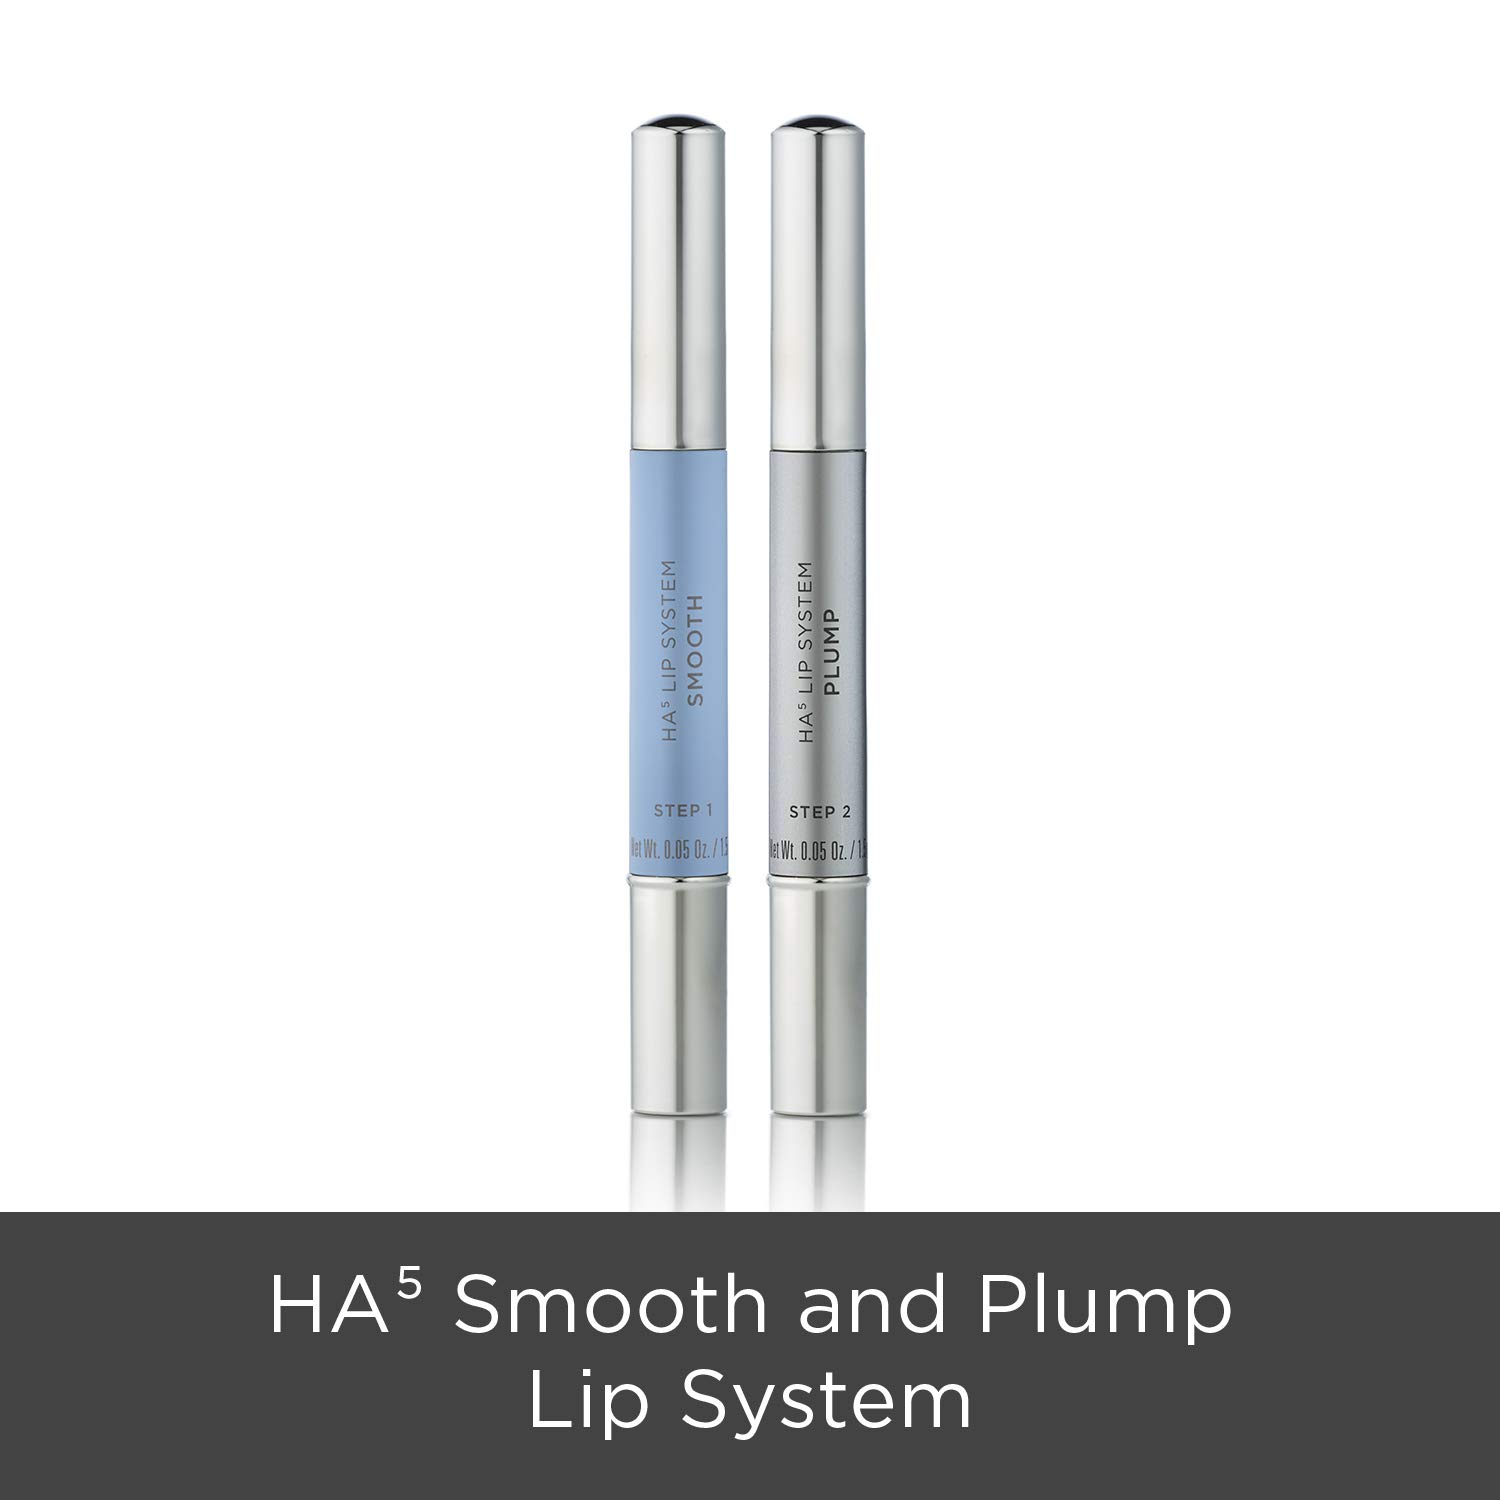 SkinMedica HA5 Smooth and Plump Lip System by SkinMedica